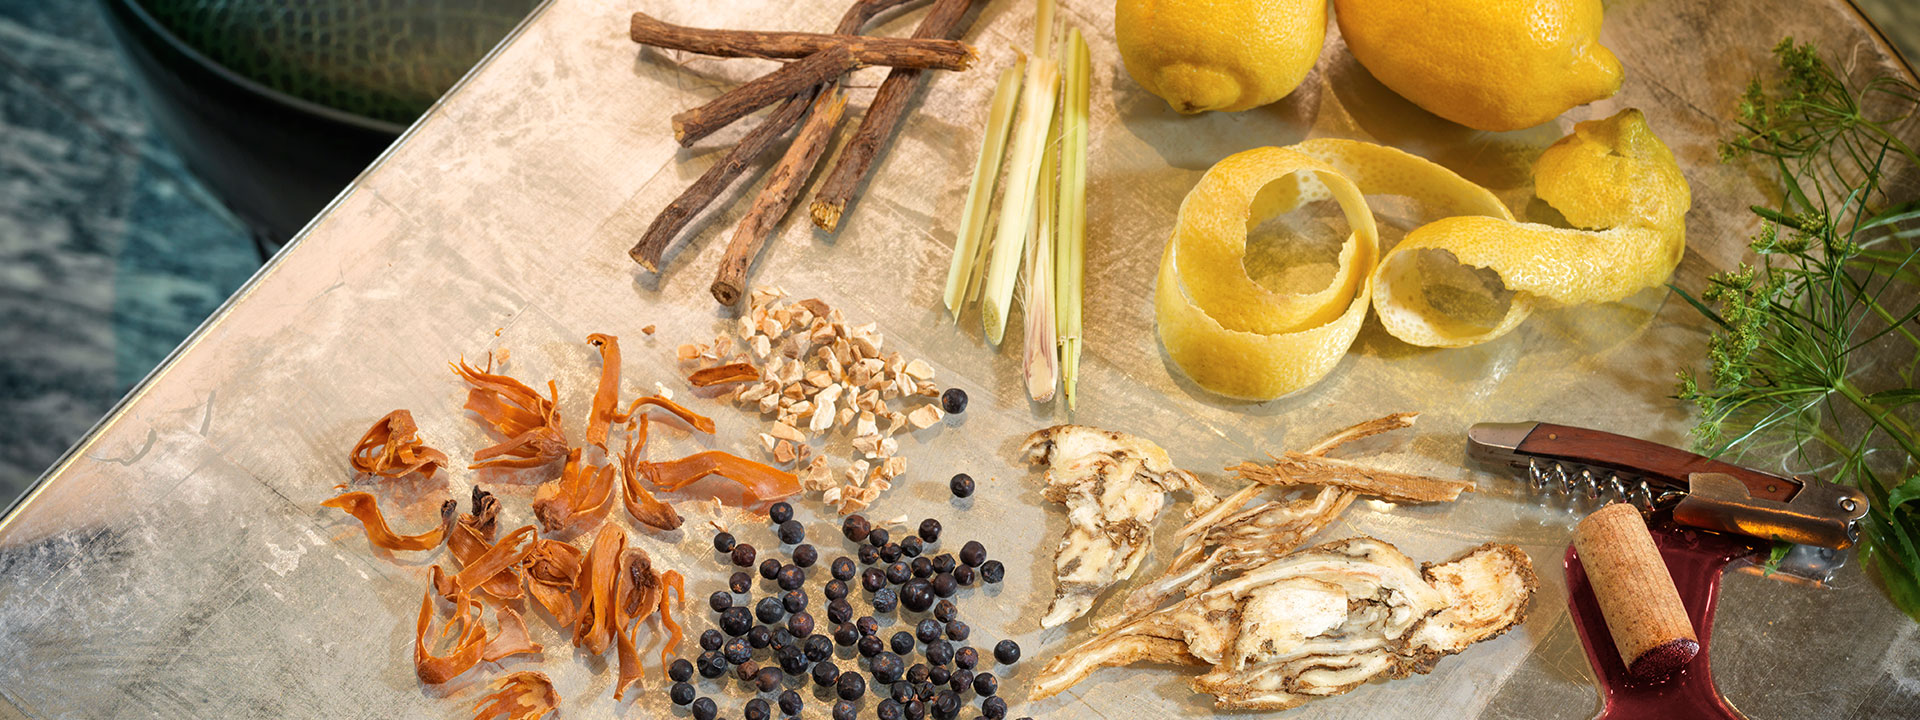 Botanicals ingredients at the connaught bar gin